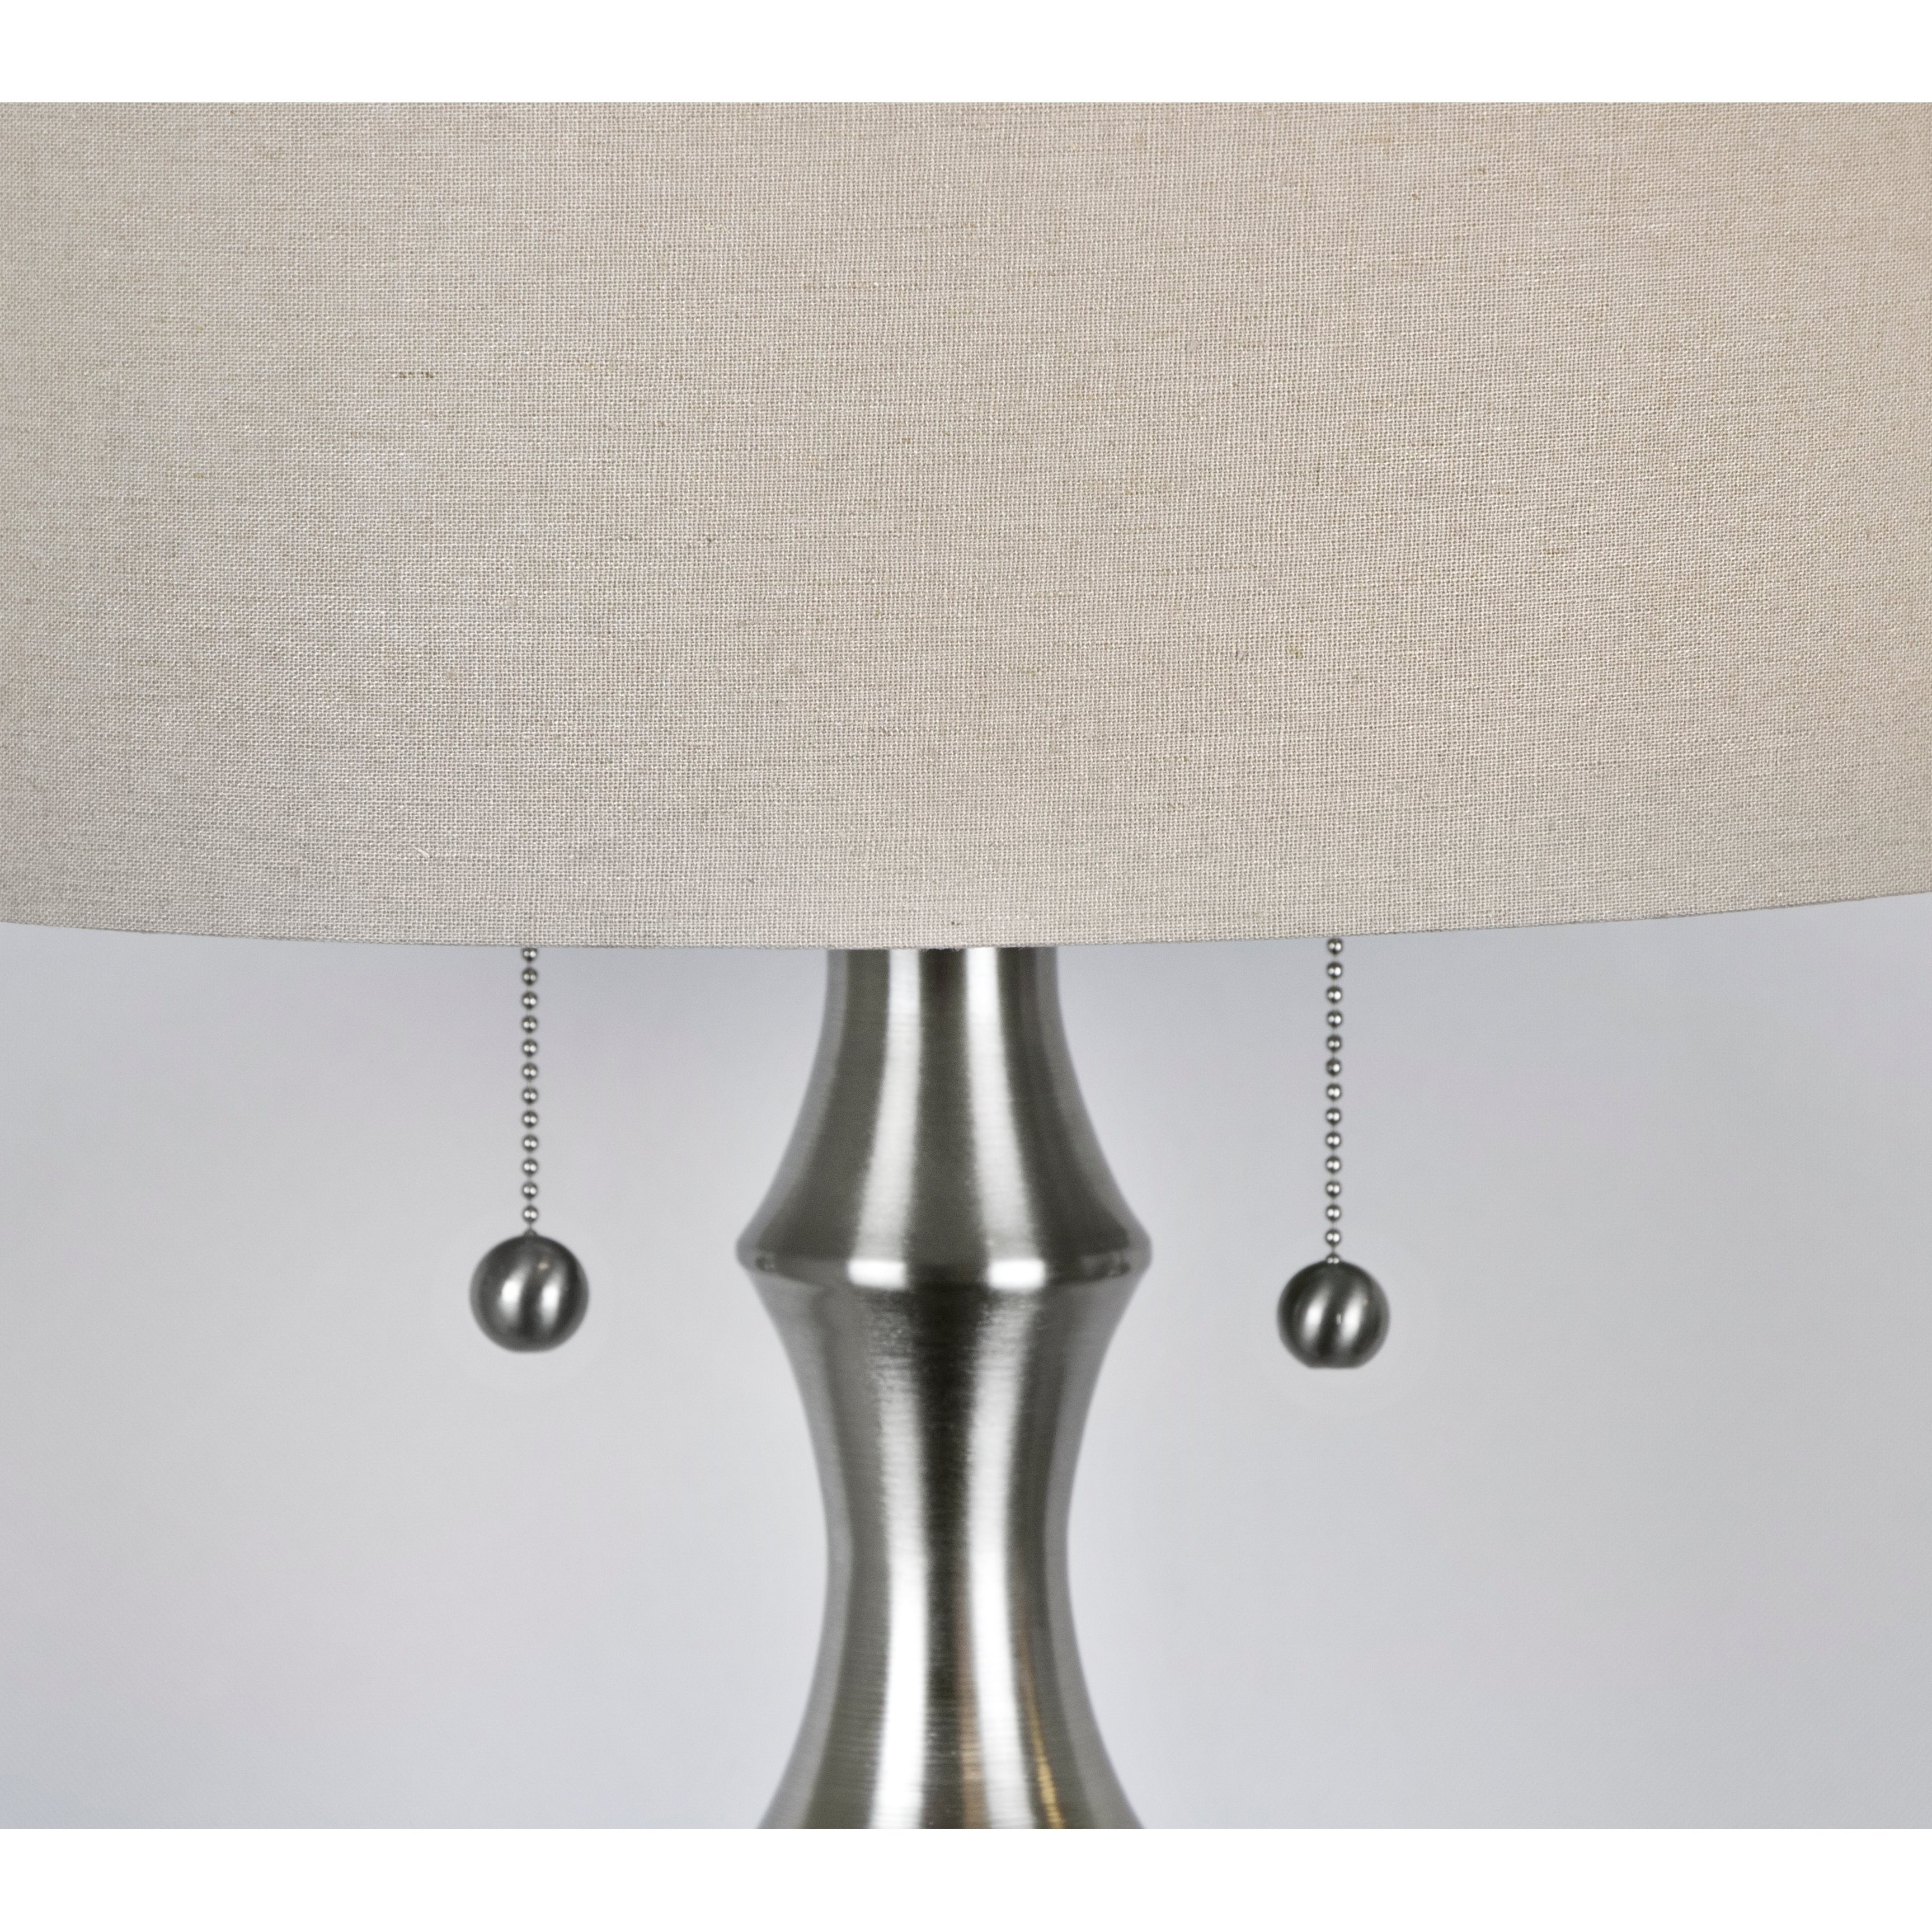 58 5 Brushed Nickel Table Lamp W Beige Fabric Drum Shade